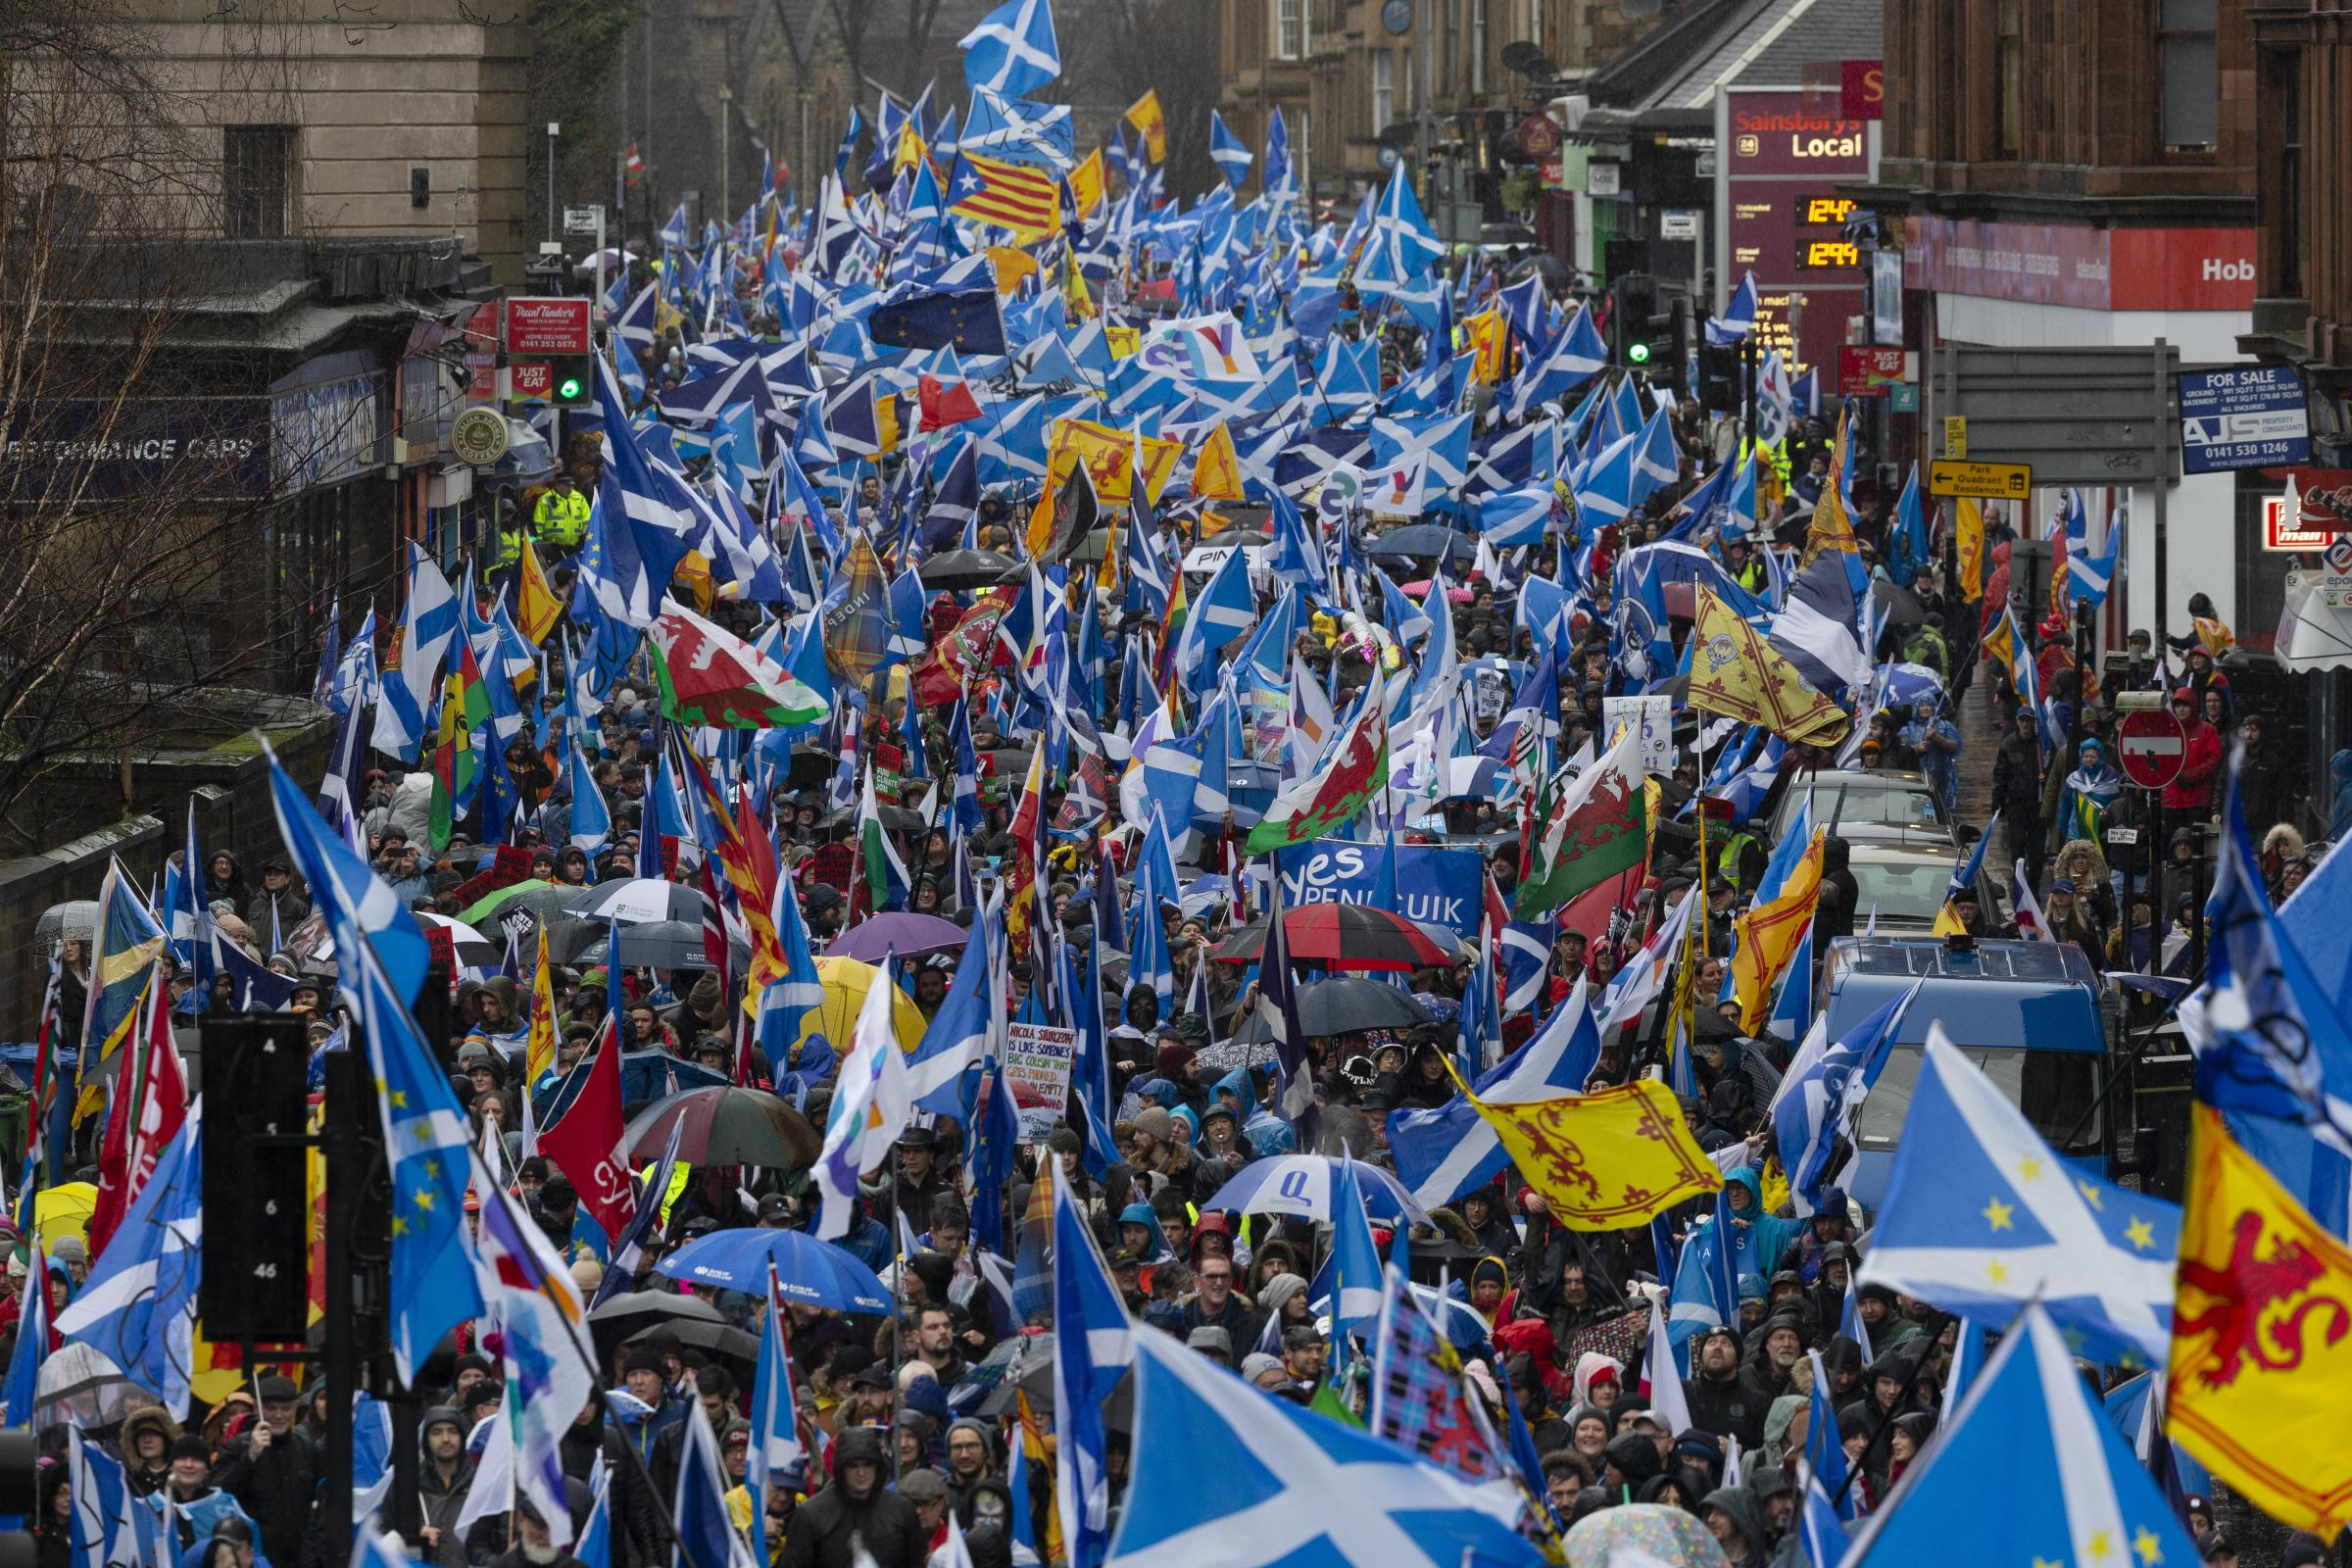 Indyref2 donations to SNP 'may have been spent on office refurbishment'